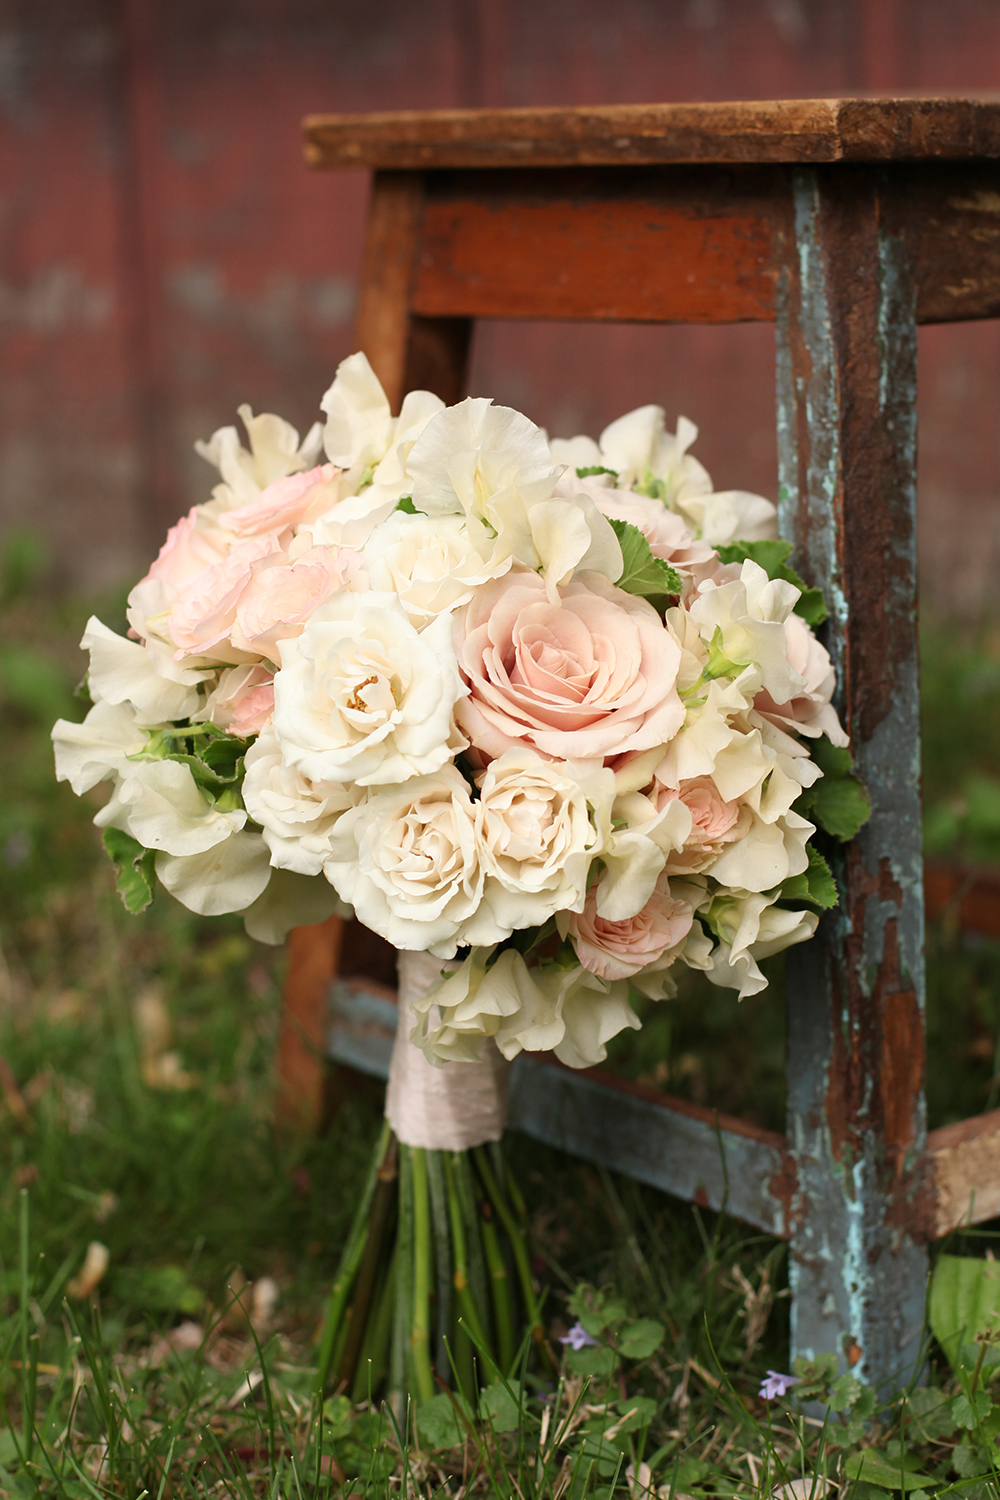 bridesmaid bouquet by wedding florist Floral Verde LLC in Cincinnati, Ohio; with Brillant Stars Bridal spray roses, Keira garden roses, White Majolica spray roses, Quicksand roses, ivory Japanese sweet pea and scented geranium